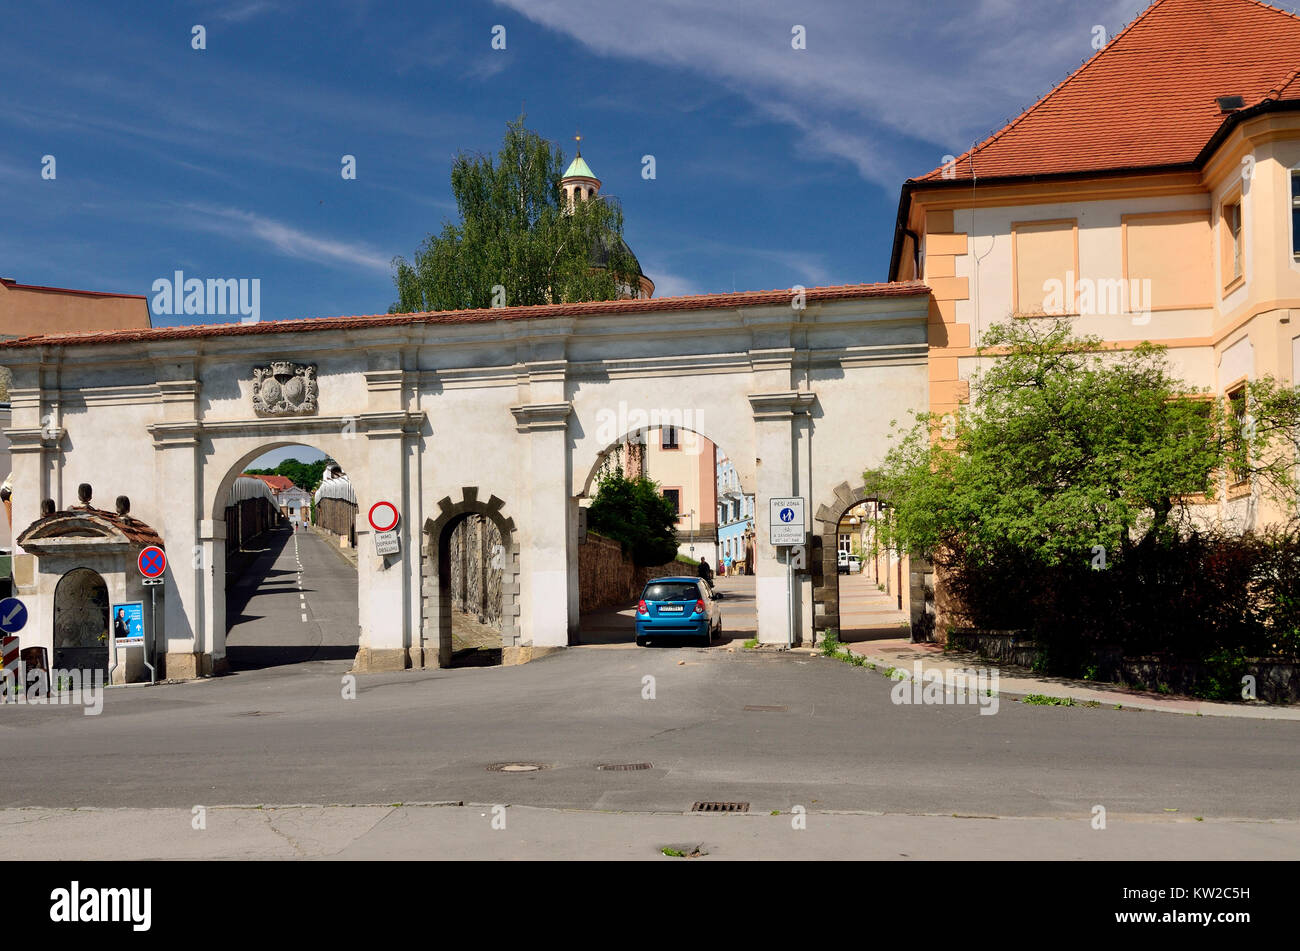 Decin Tschechien decin tetschen czechia decin access journey to the castle